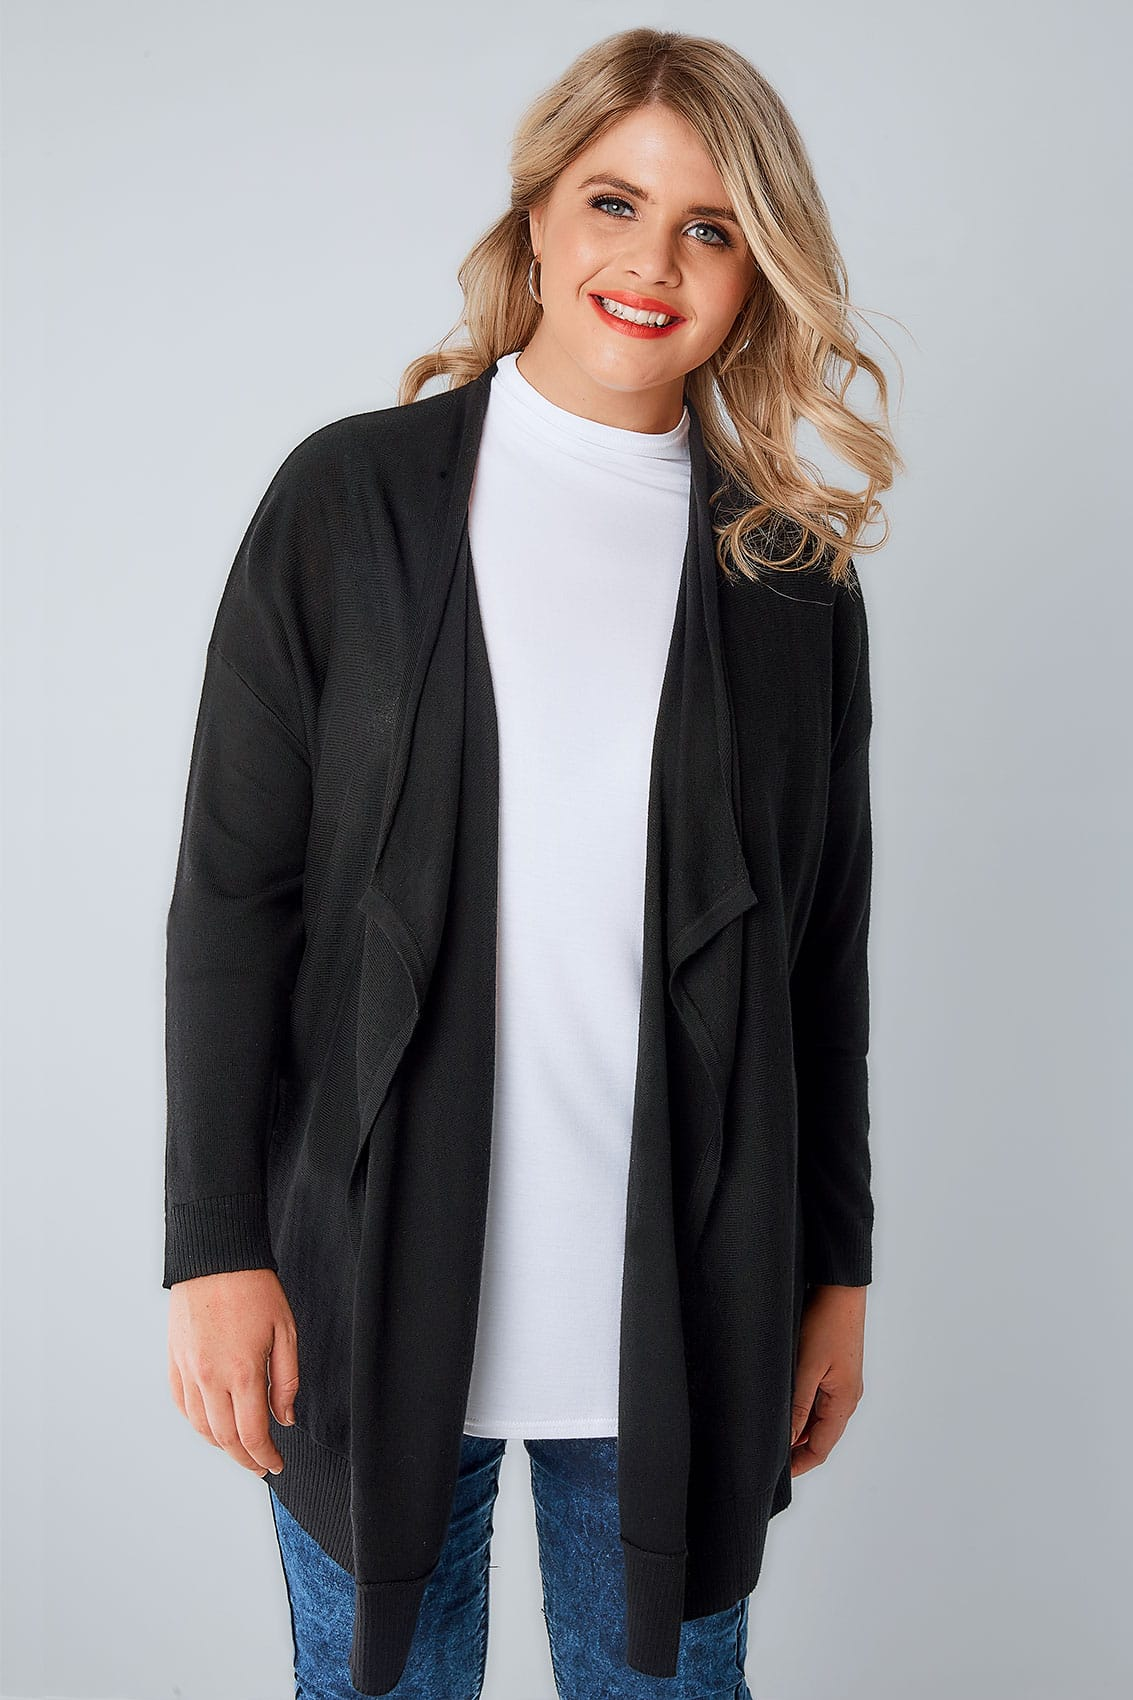 Black Knitted Waterfall Cardigan, Plus size 16 to 36